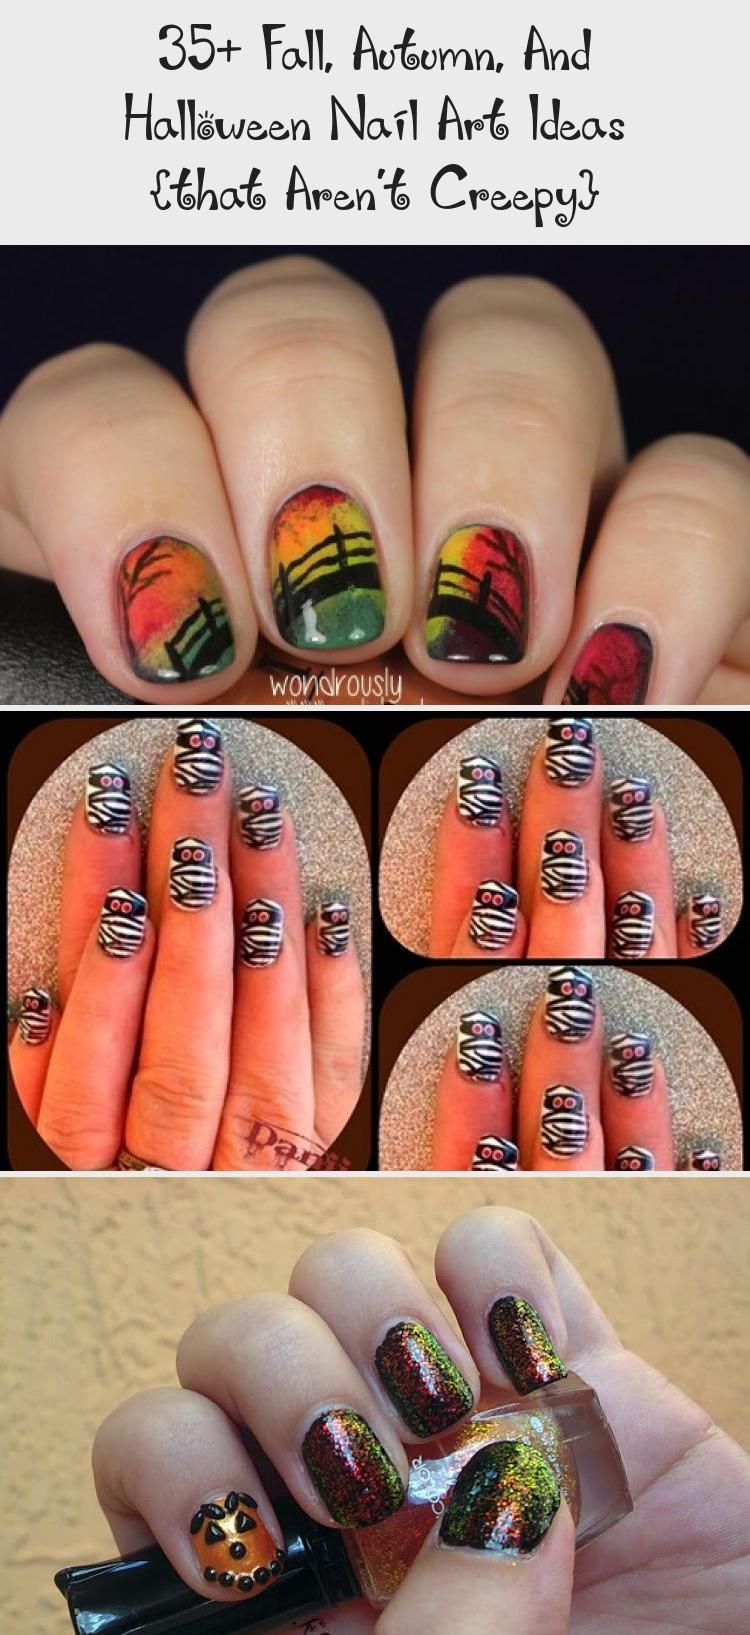 Hair Styles - in 2020 | Rose nail art, Halloween nails ...